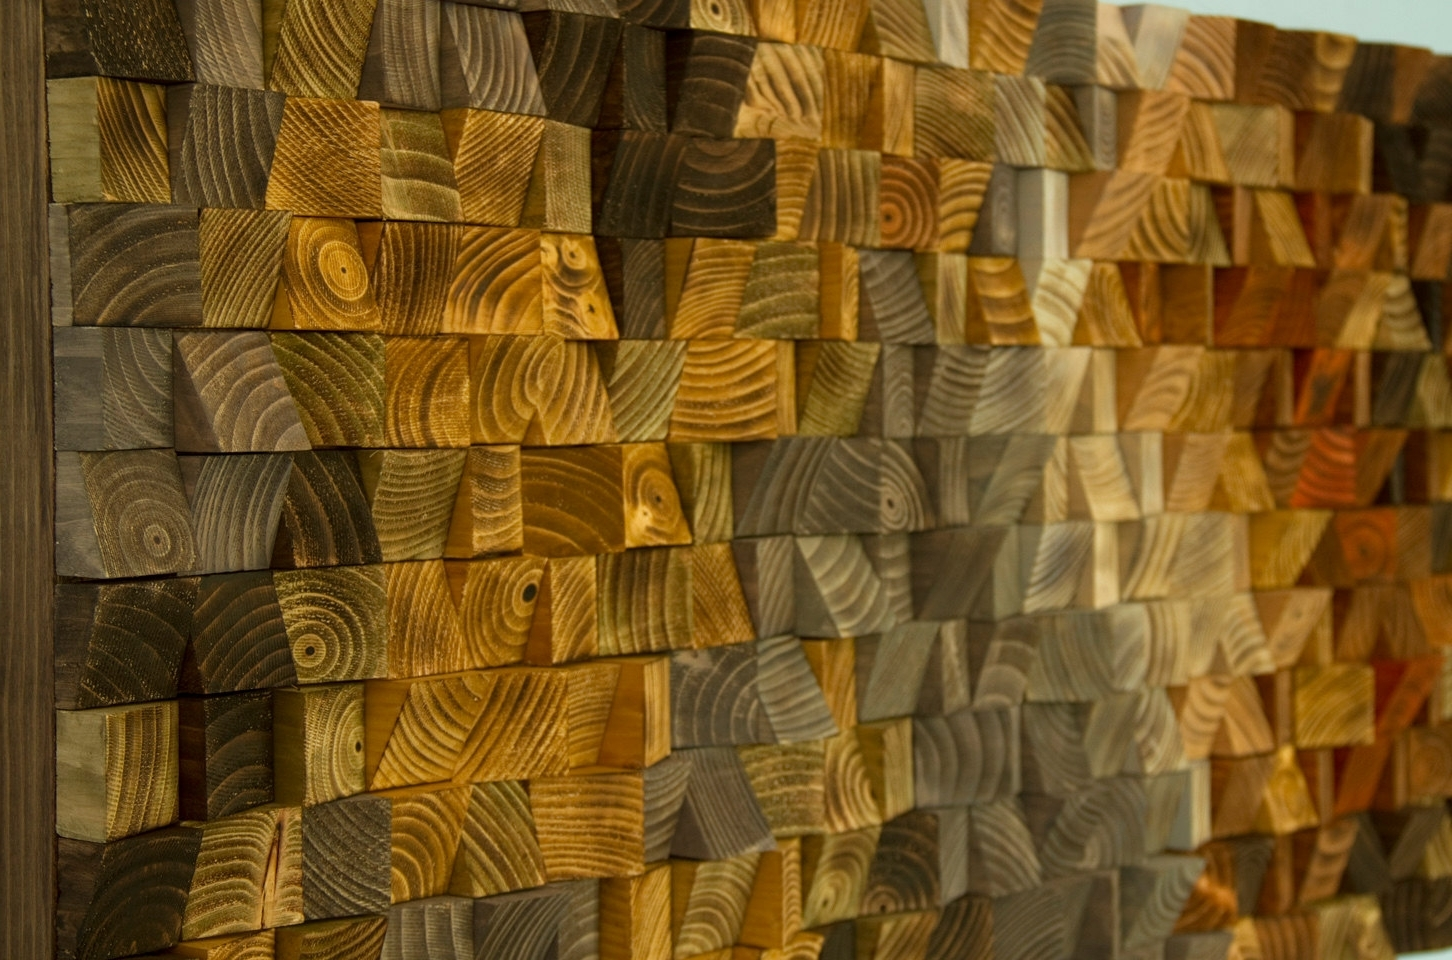 Abstract Mosaic Wall Art Pertaining To 2017 Rustic Wood Wall Art, Wood Wall Sculpture, Abstract Wood Art Mosaic (View 4 of 15)